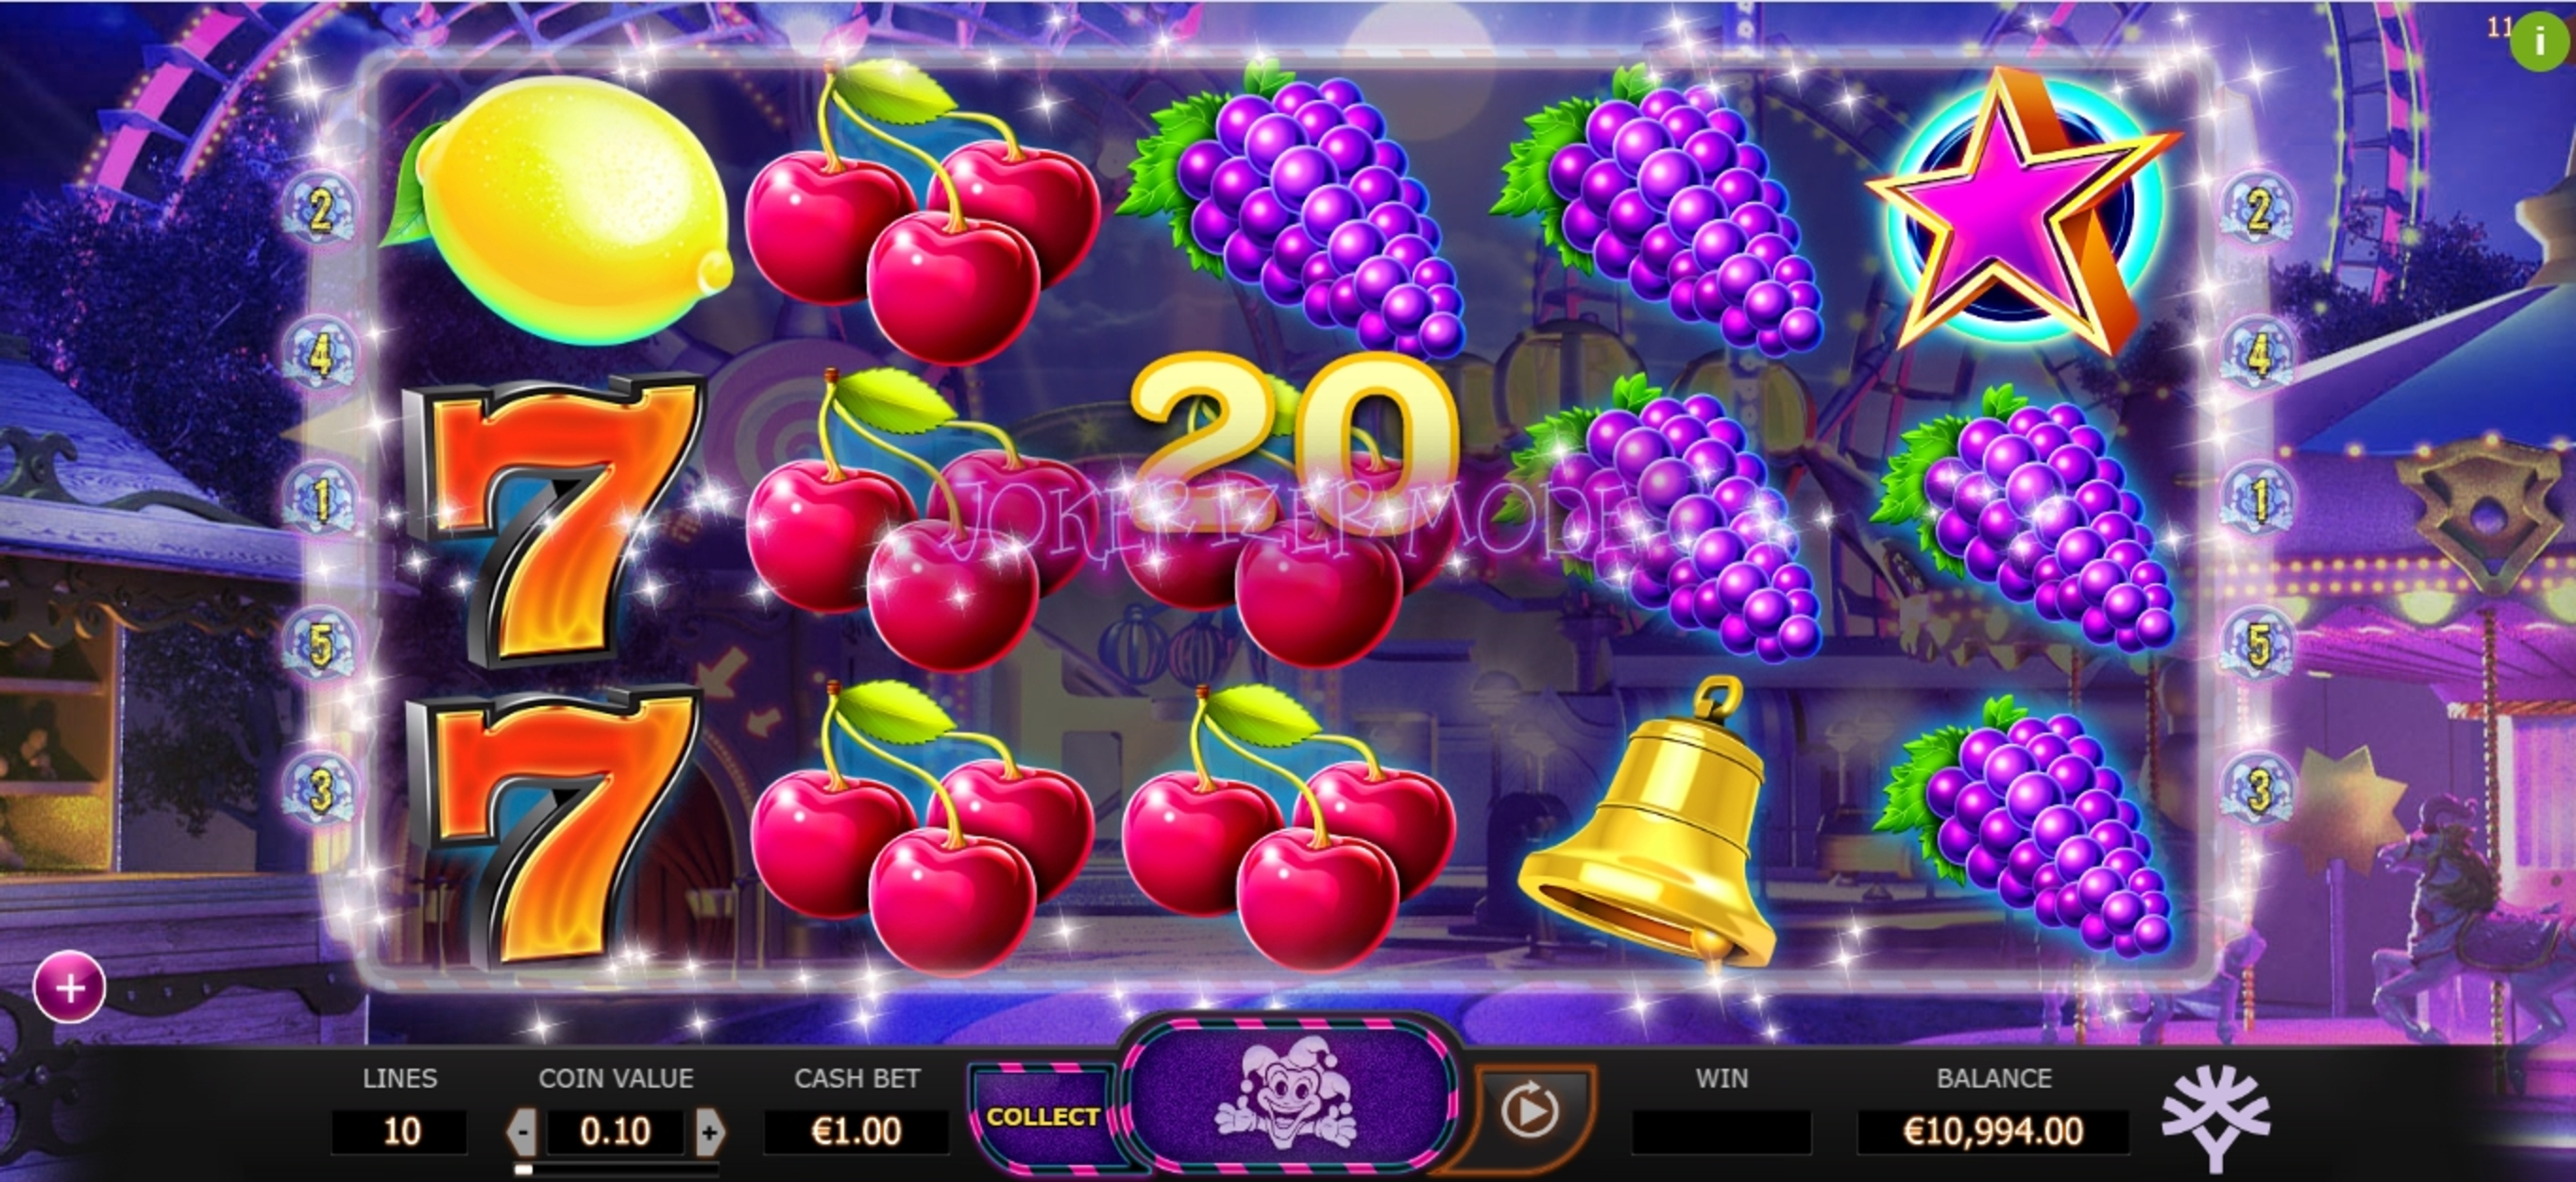 Win Money in Jokerizer Free Slot Game by Yggdrasil